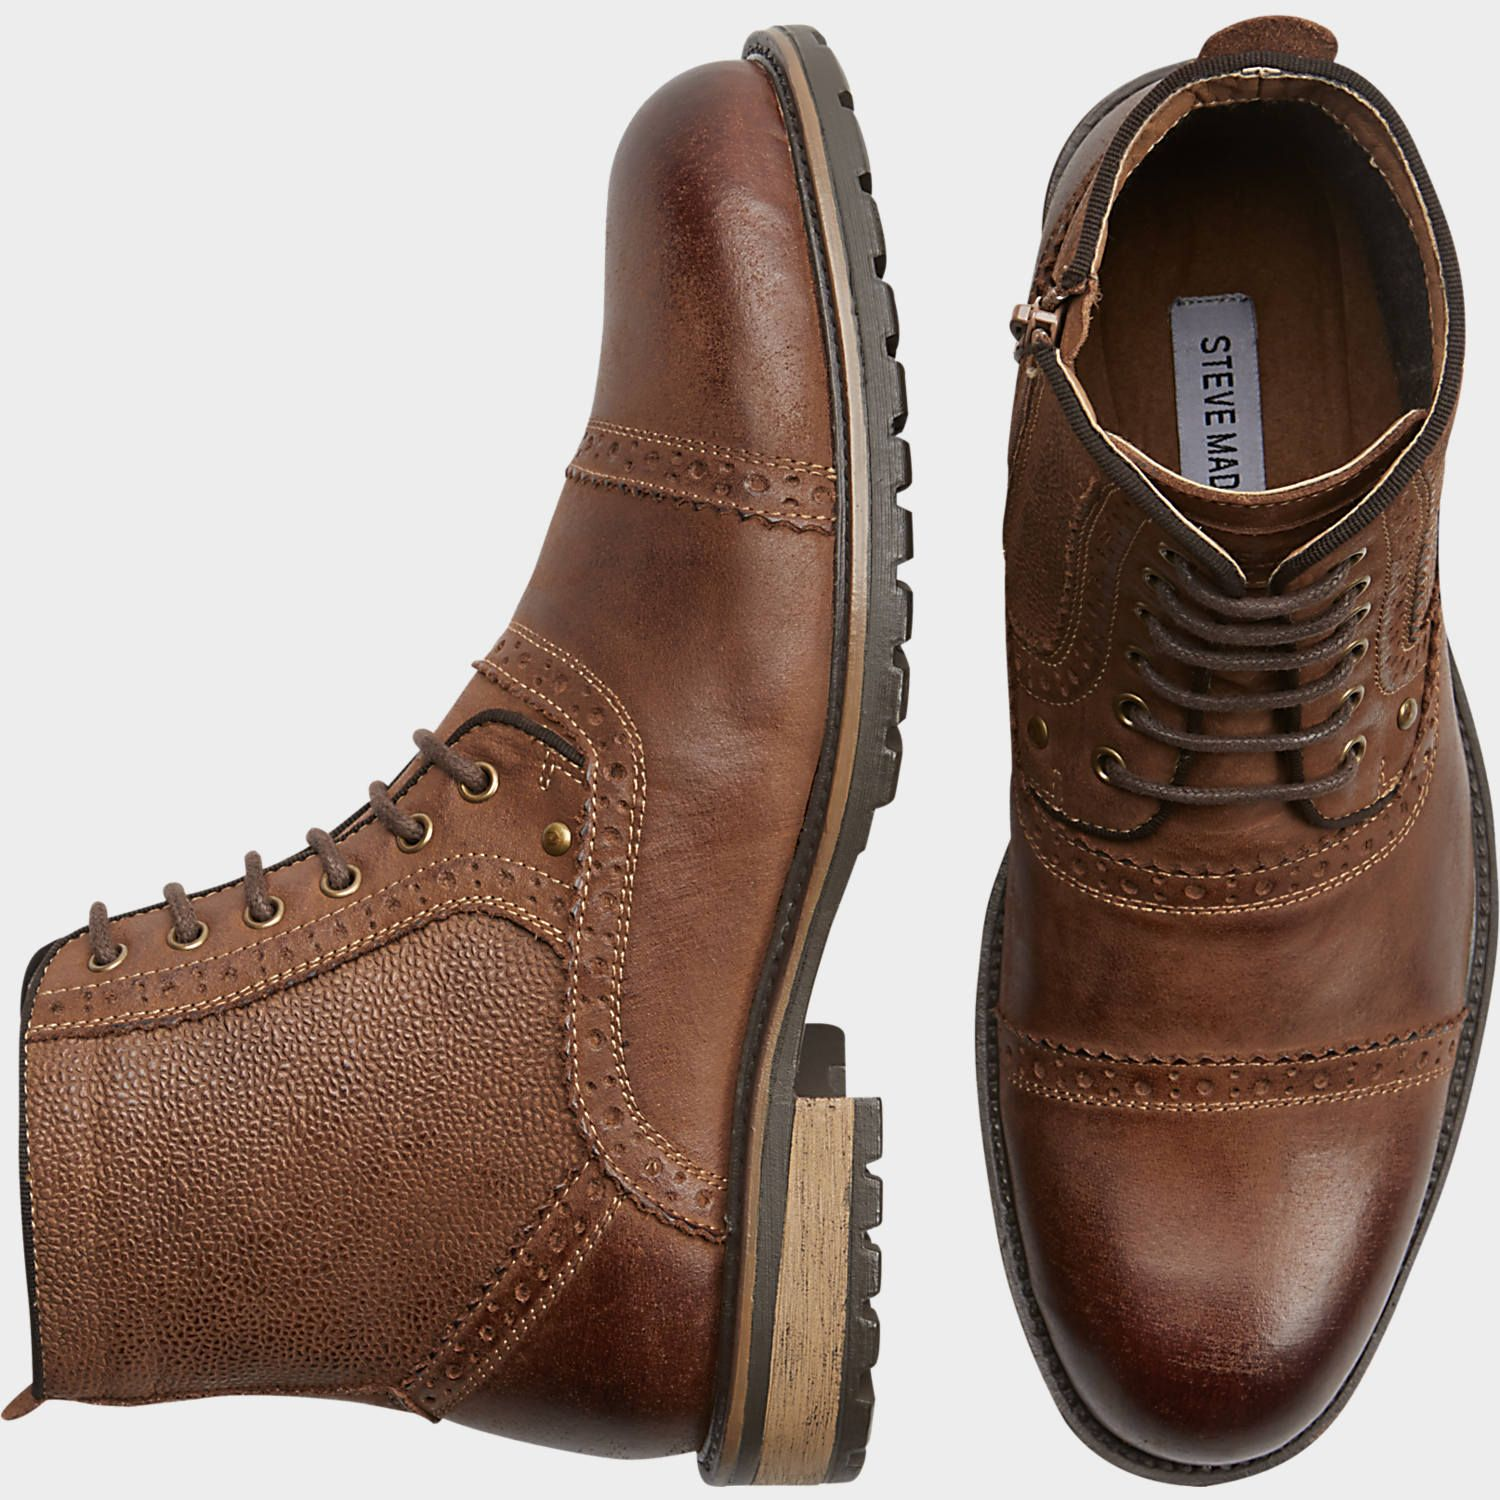 32d94ae39d5 Steve Madden Sifter Tan Boots at Men's Wearhouse. | For Him | Tan ...